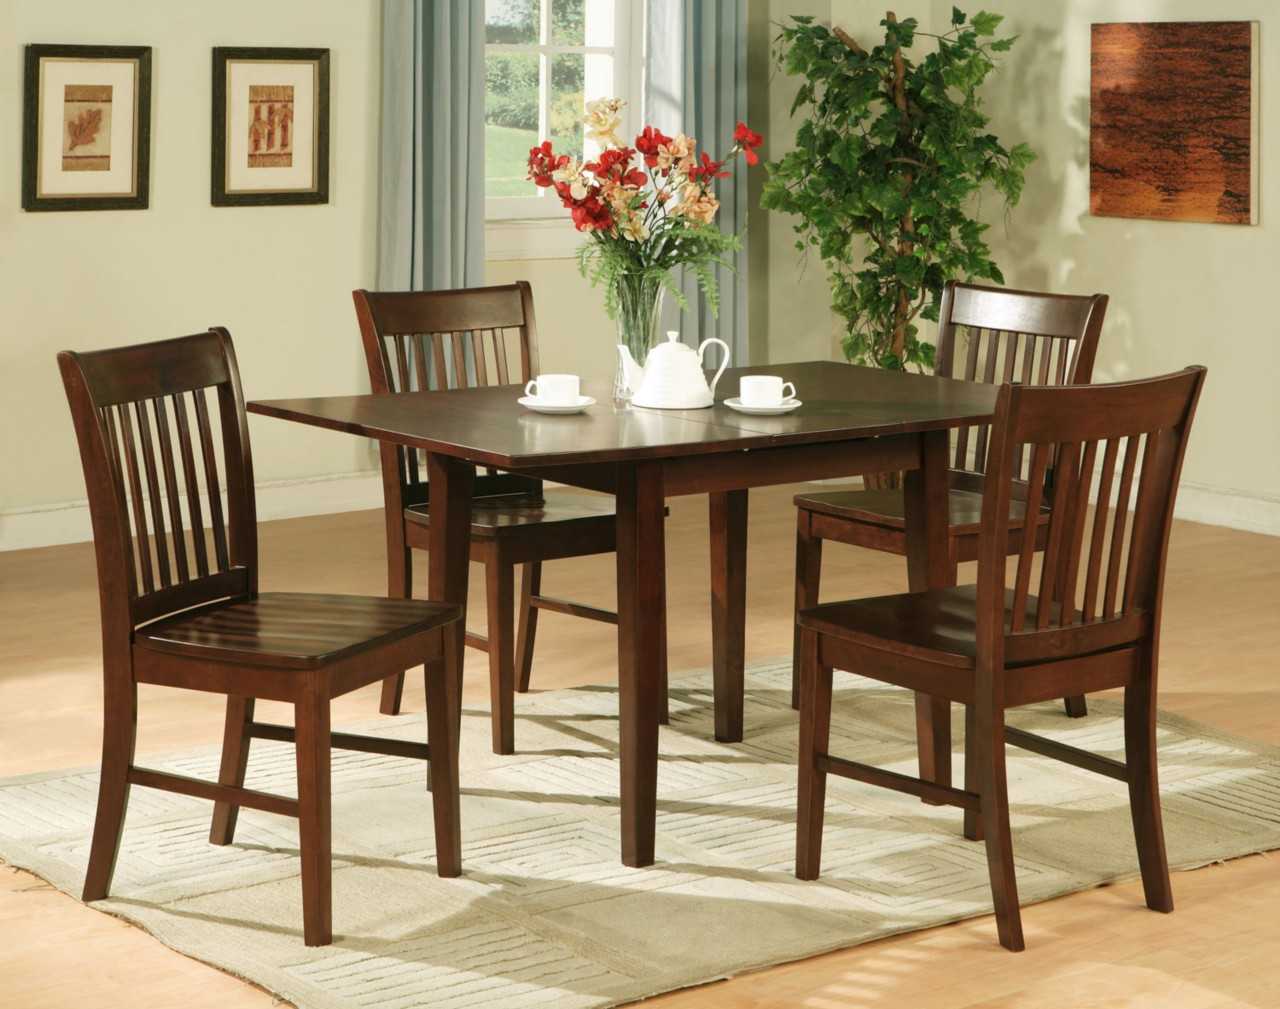 5pc rectangular kitchen dinette table 4 chairs mahogany ebay for Kitchen table and chairs set